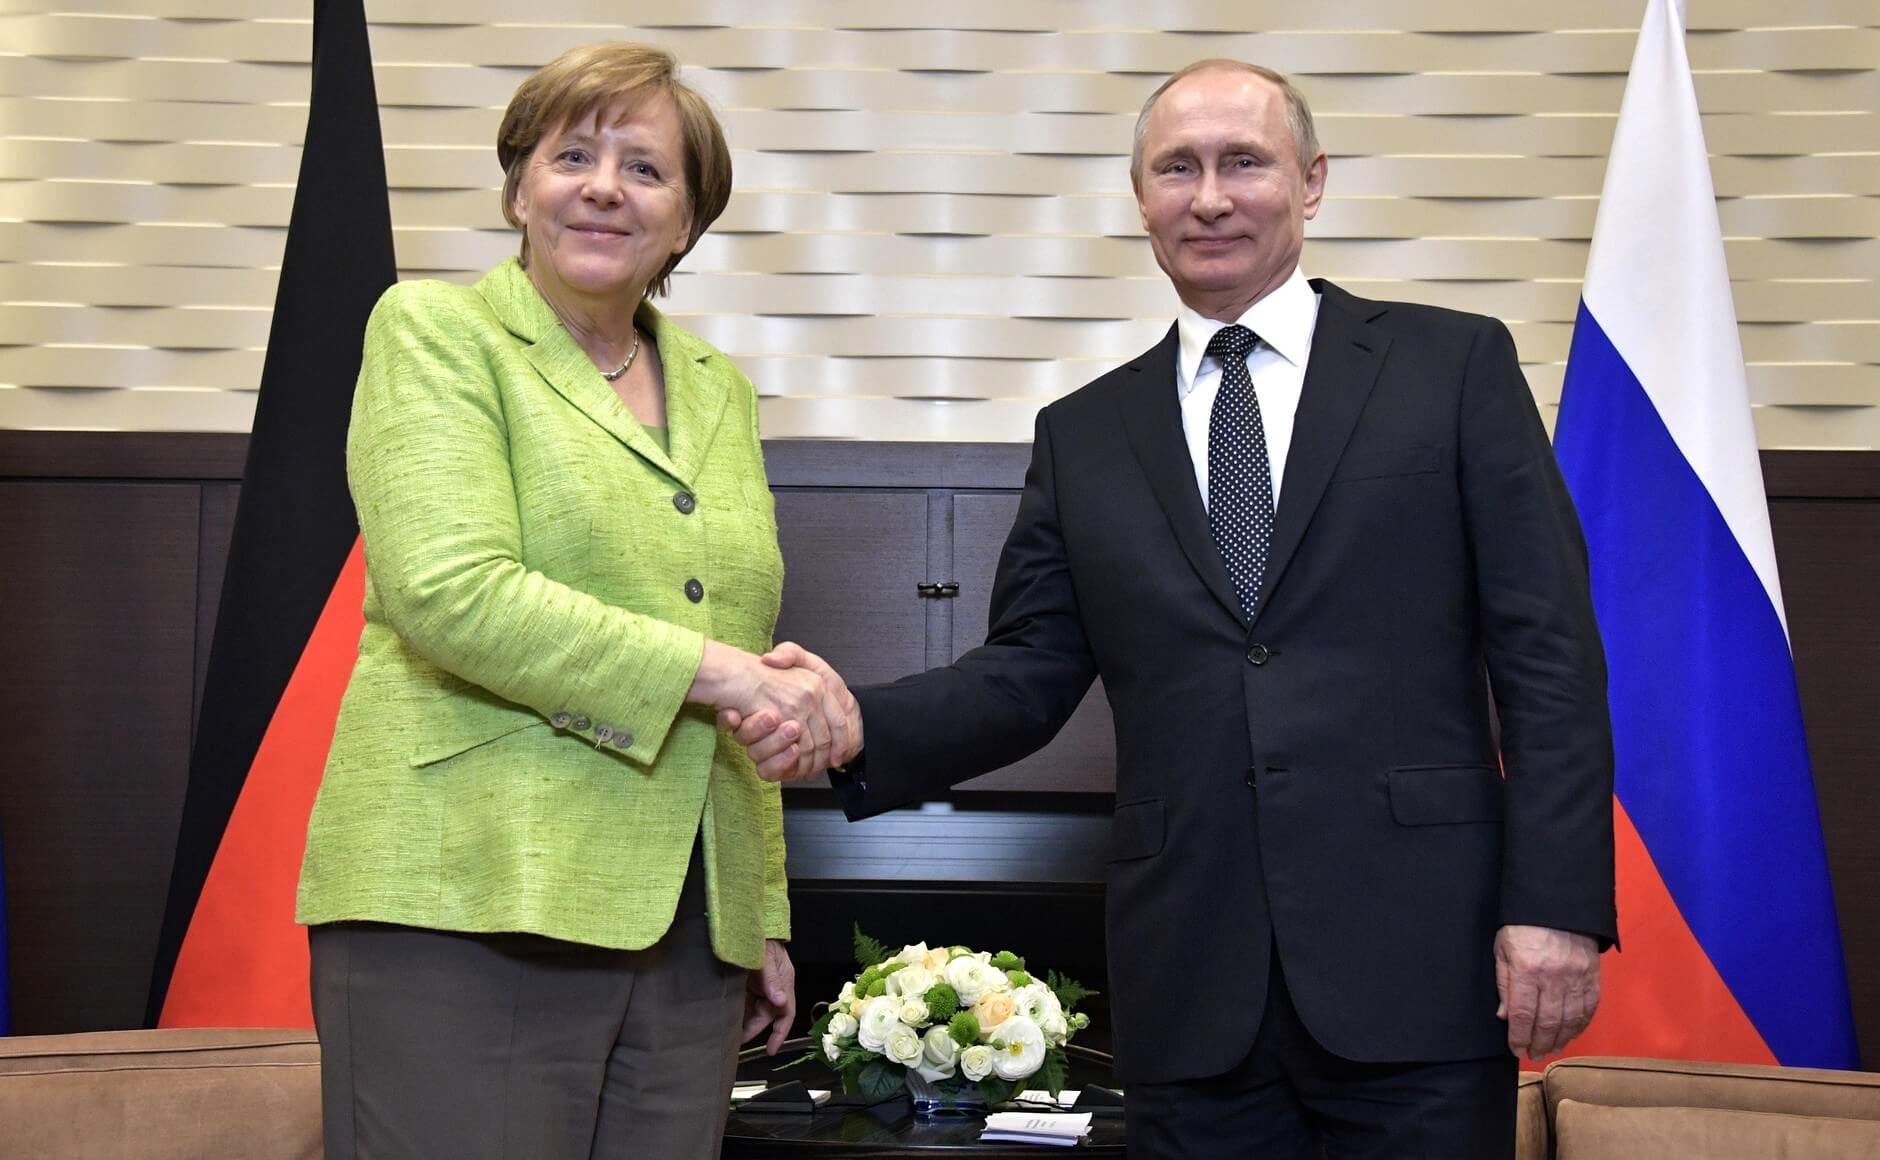 President Putin receives Chancellor Merkel during a state visit in 2017. © Wikimedia Commons